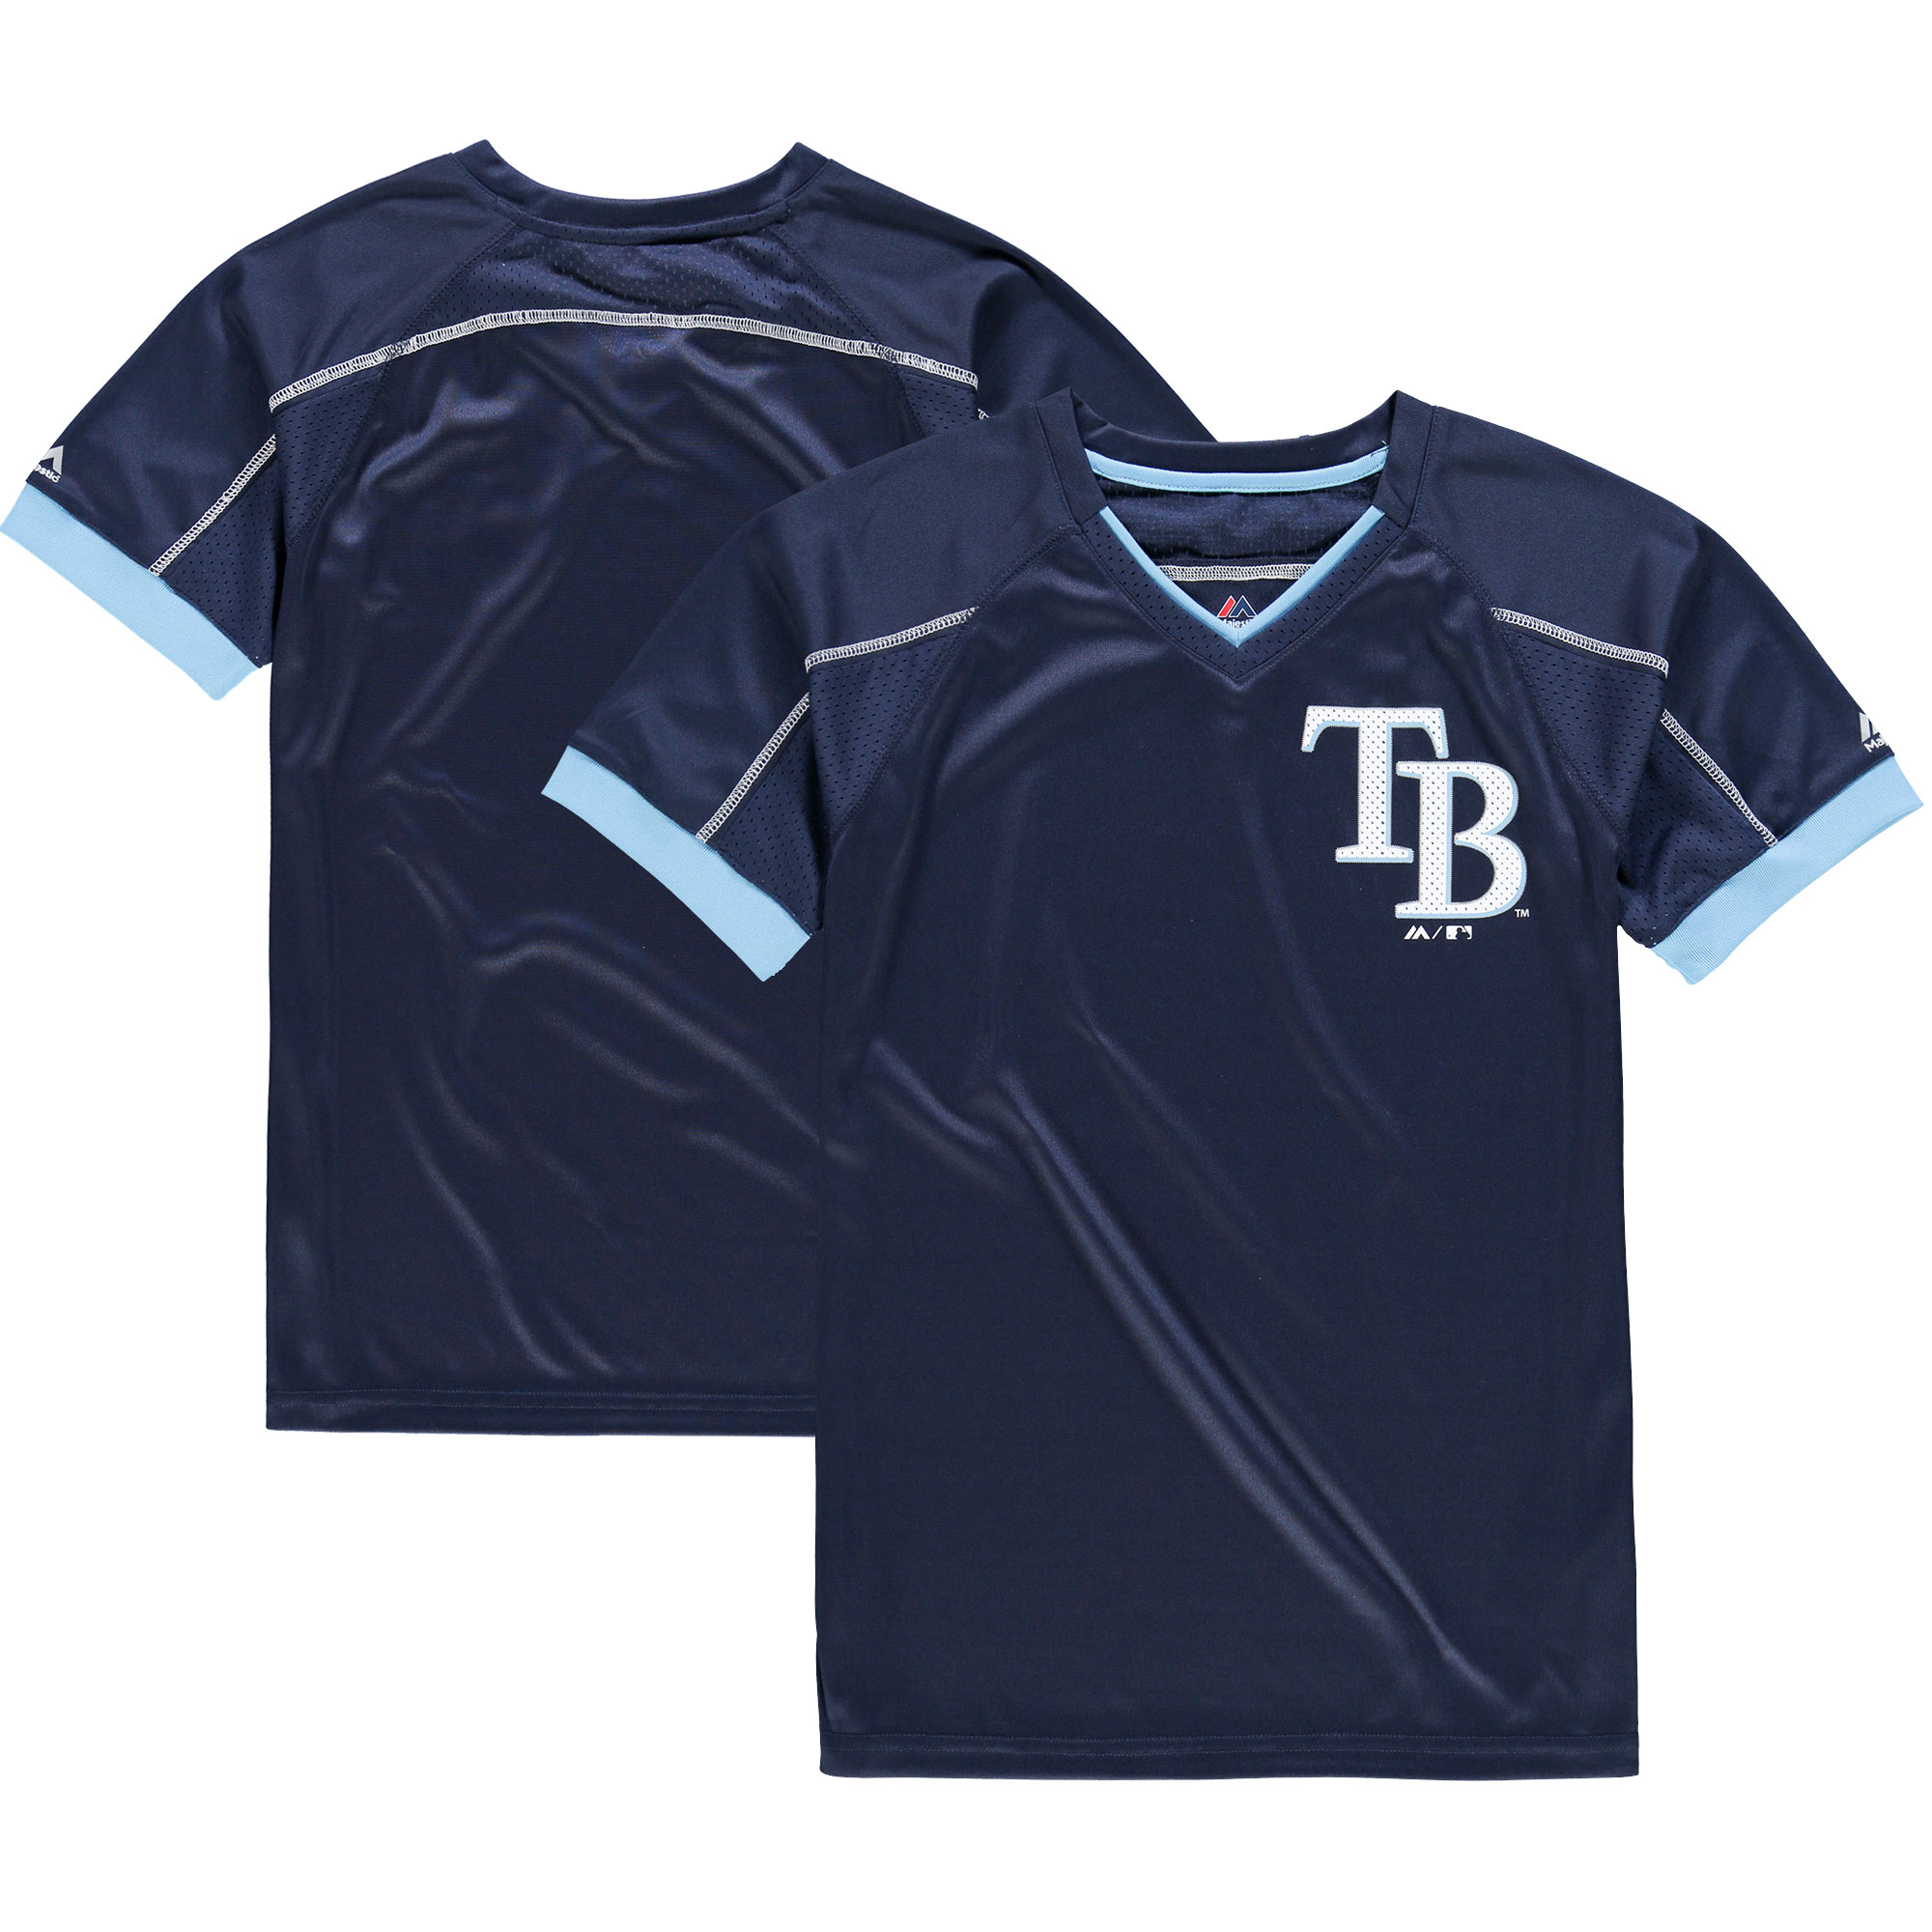 Tampa Bay Rays Majestic Youth Emergence T-Shirt - Navy